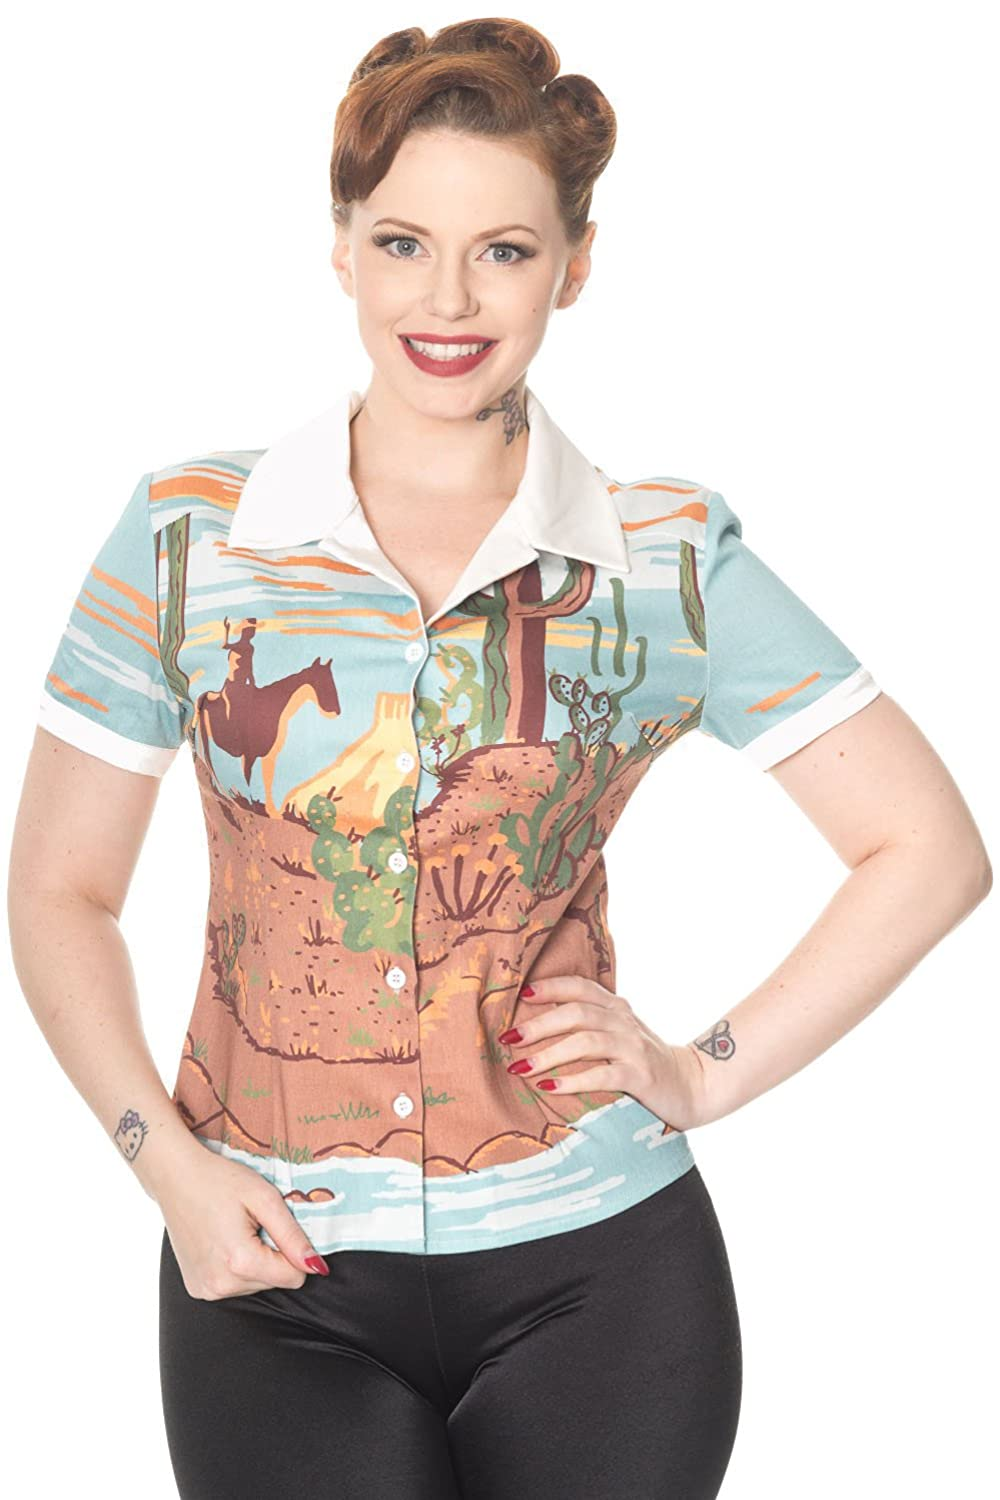 1950s Rockabilly & Pinup Tops, Shirts, Blouses Banned Magical Day Vintage Retro Blouse £27.99 AT vintagedancer.com